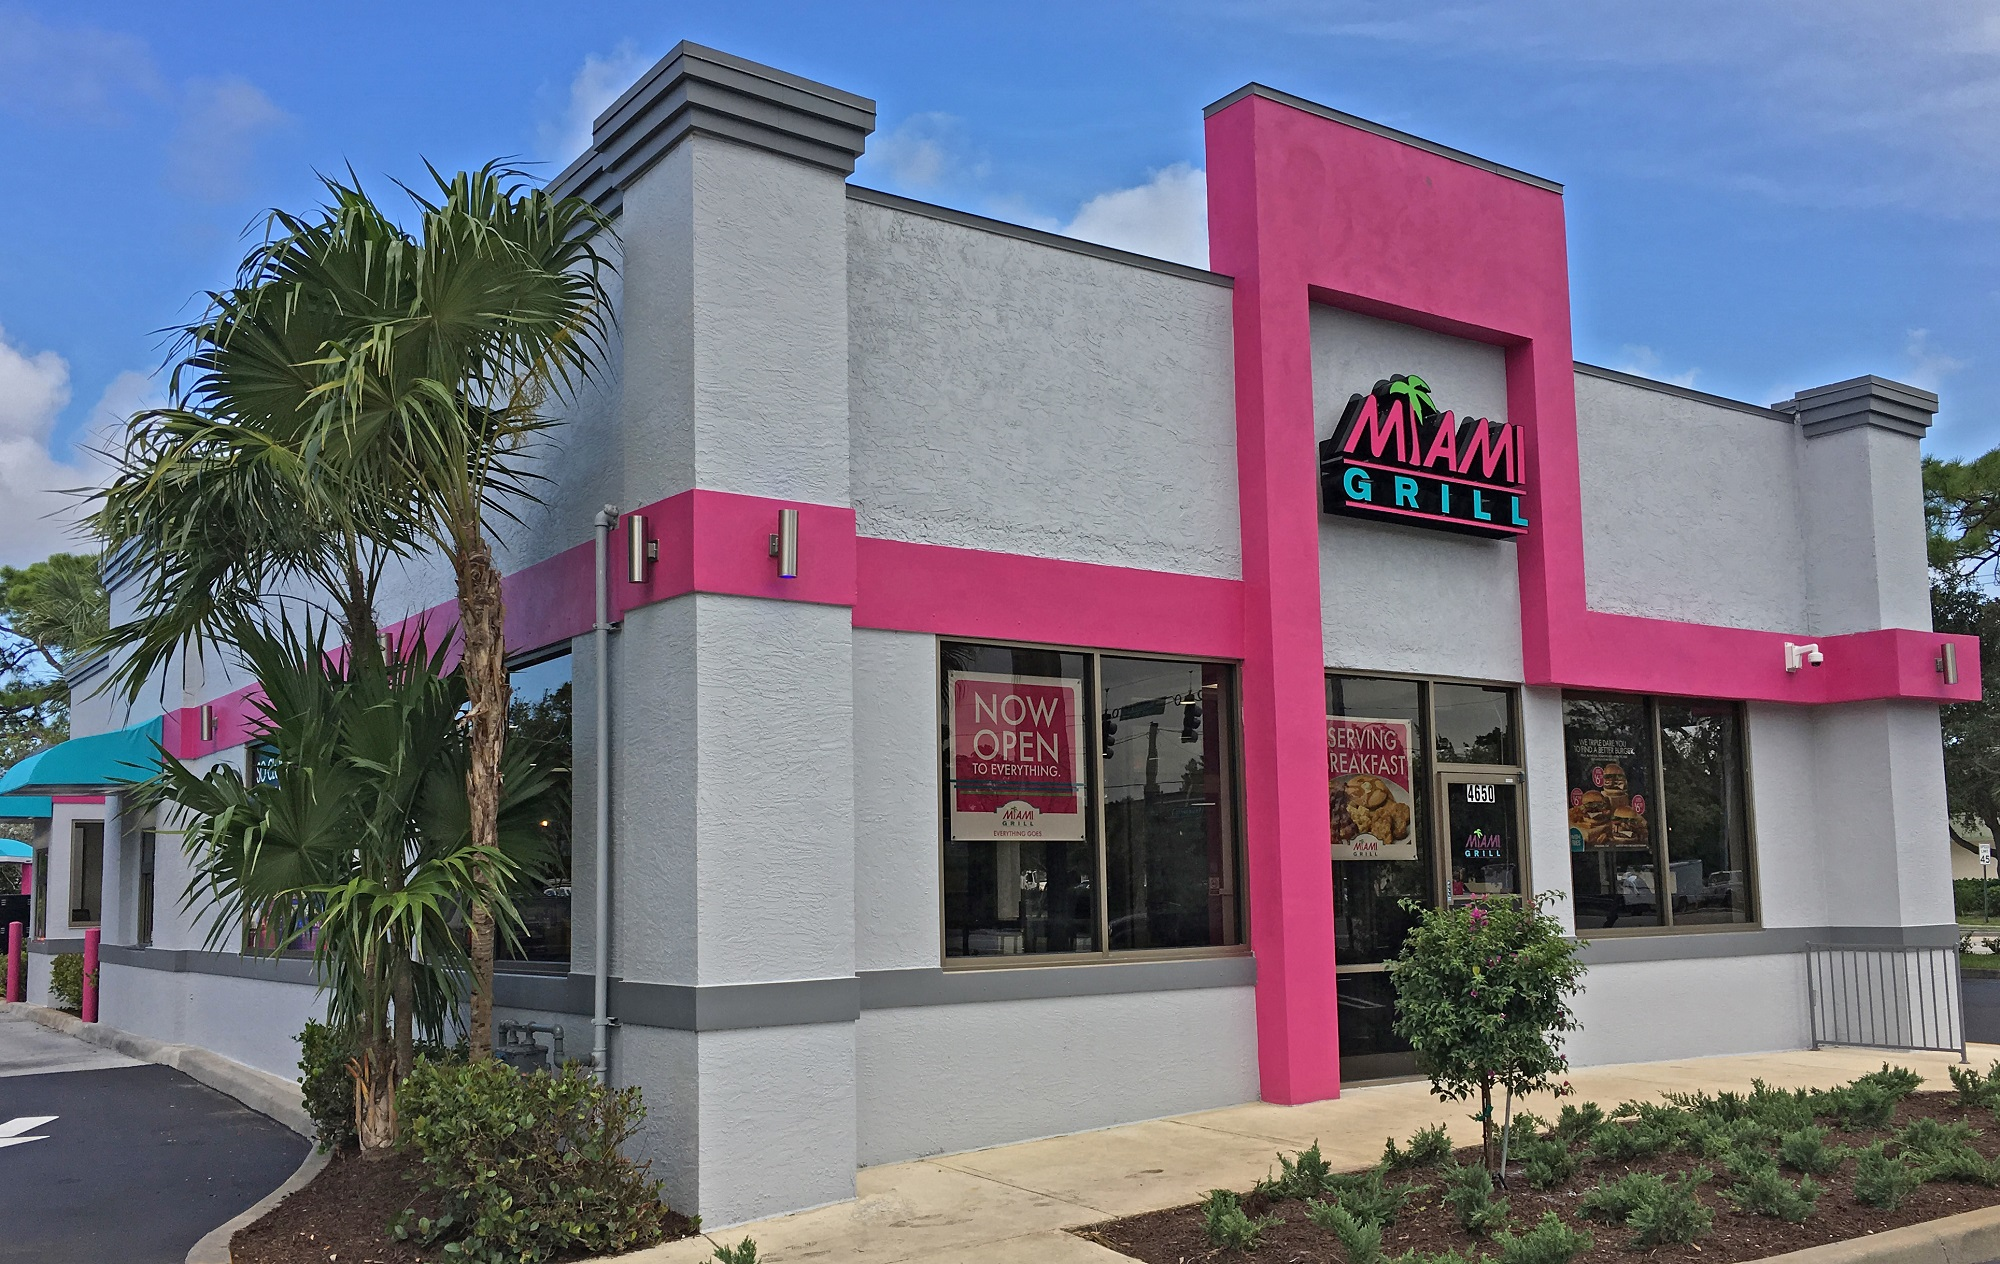 miami grill® brings its south beach vibe & everything goes